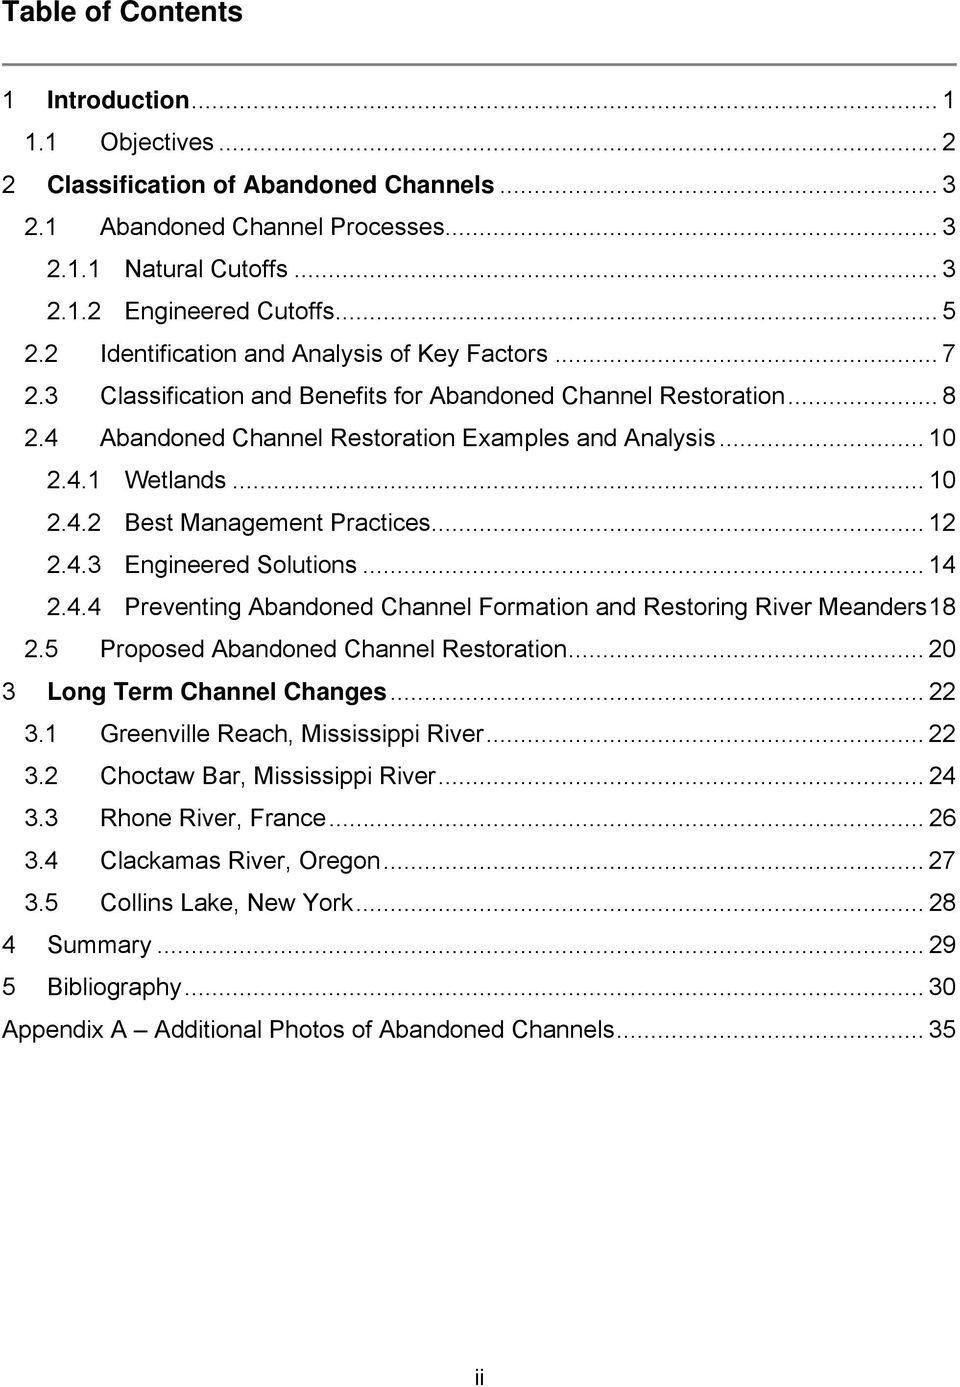 .. 10 2.4.2 Best Management Practices... 12 2.4.3 Engineered Solutions... 14 2.4.4 Preventing Abandoned Channel Formation and Restoring River Meanders18 2.5 Proposed Abandoned Channel Restoration.